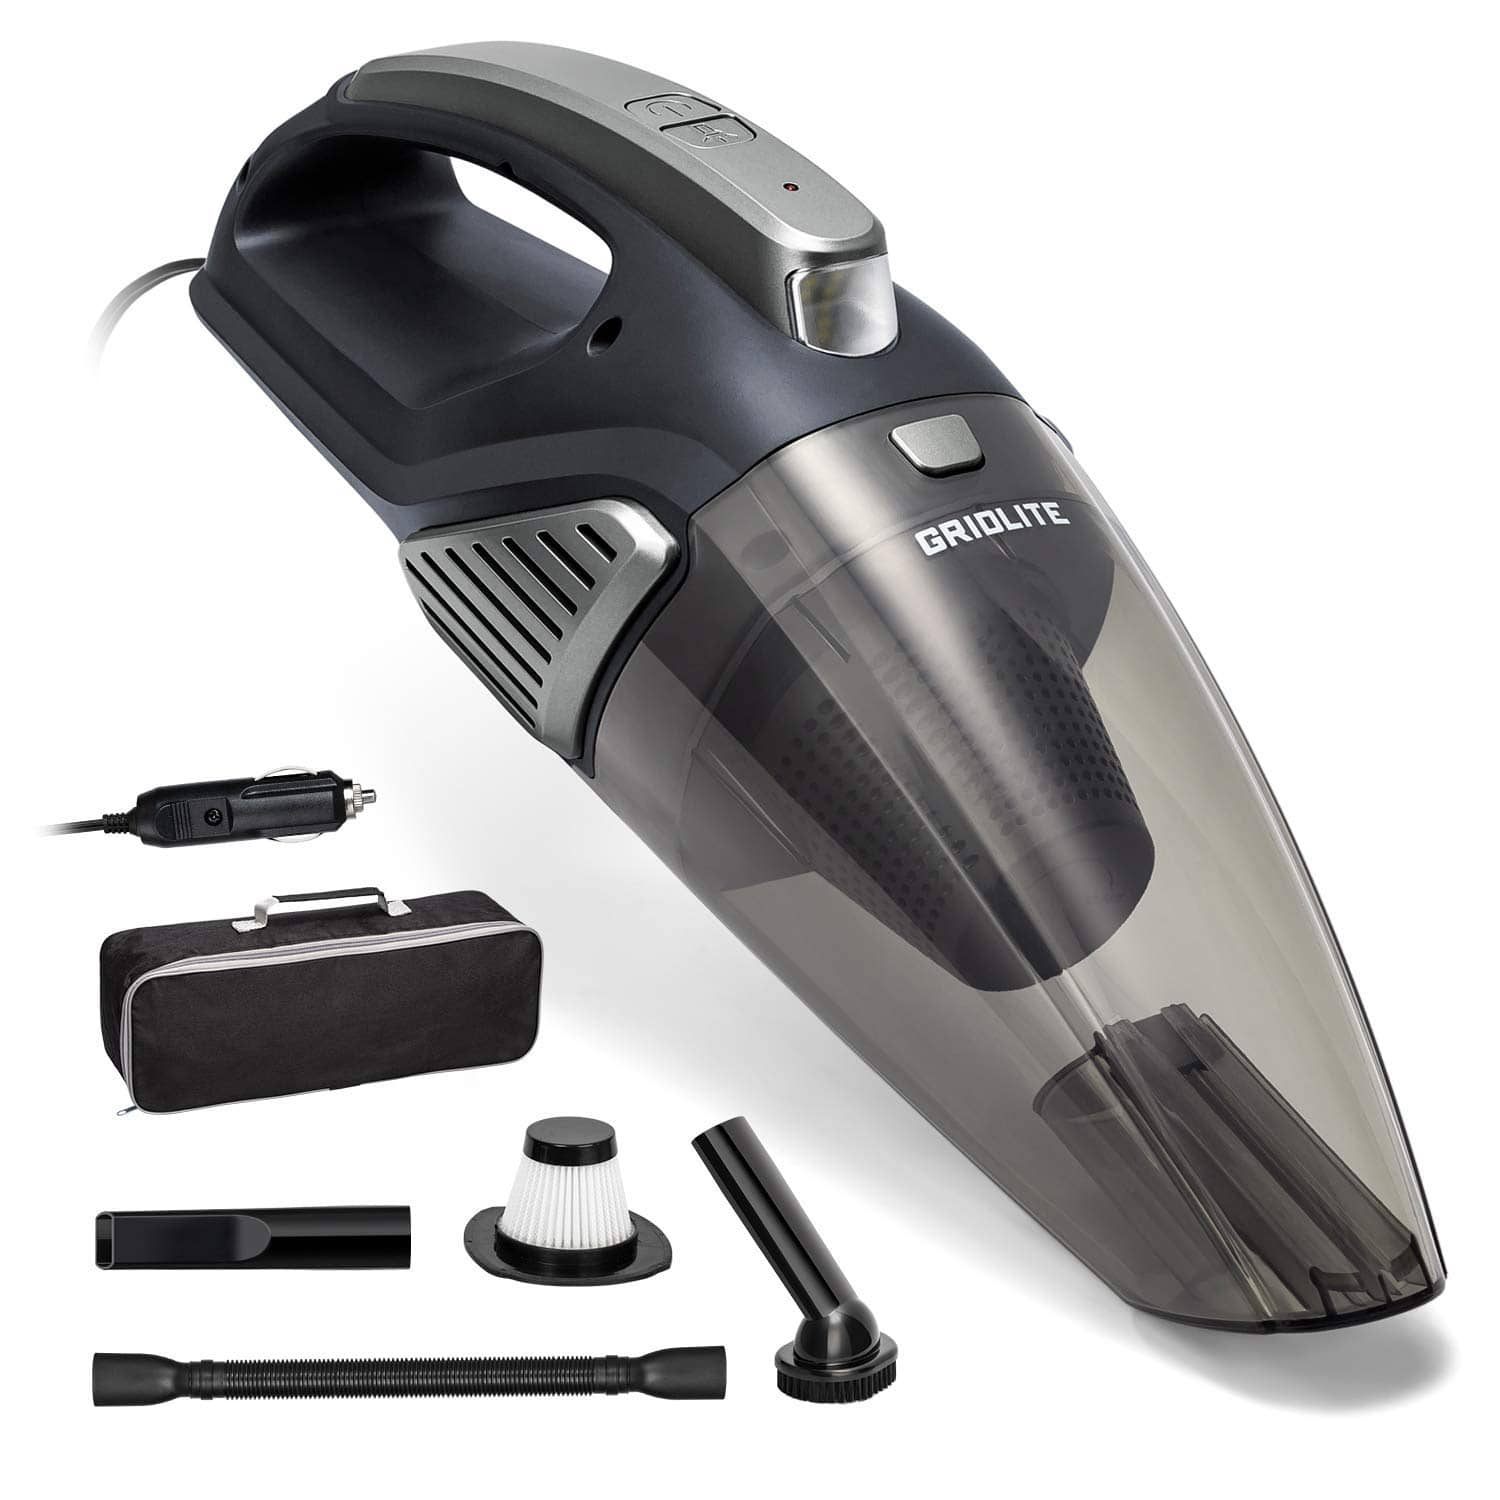 Cyber Monday Deals : GridLite 5000PA Car Vacuum Cleaner with Nozzle Set $17.39 +FS for Prime Members